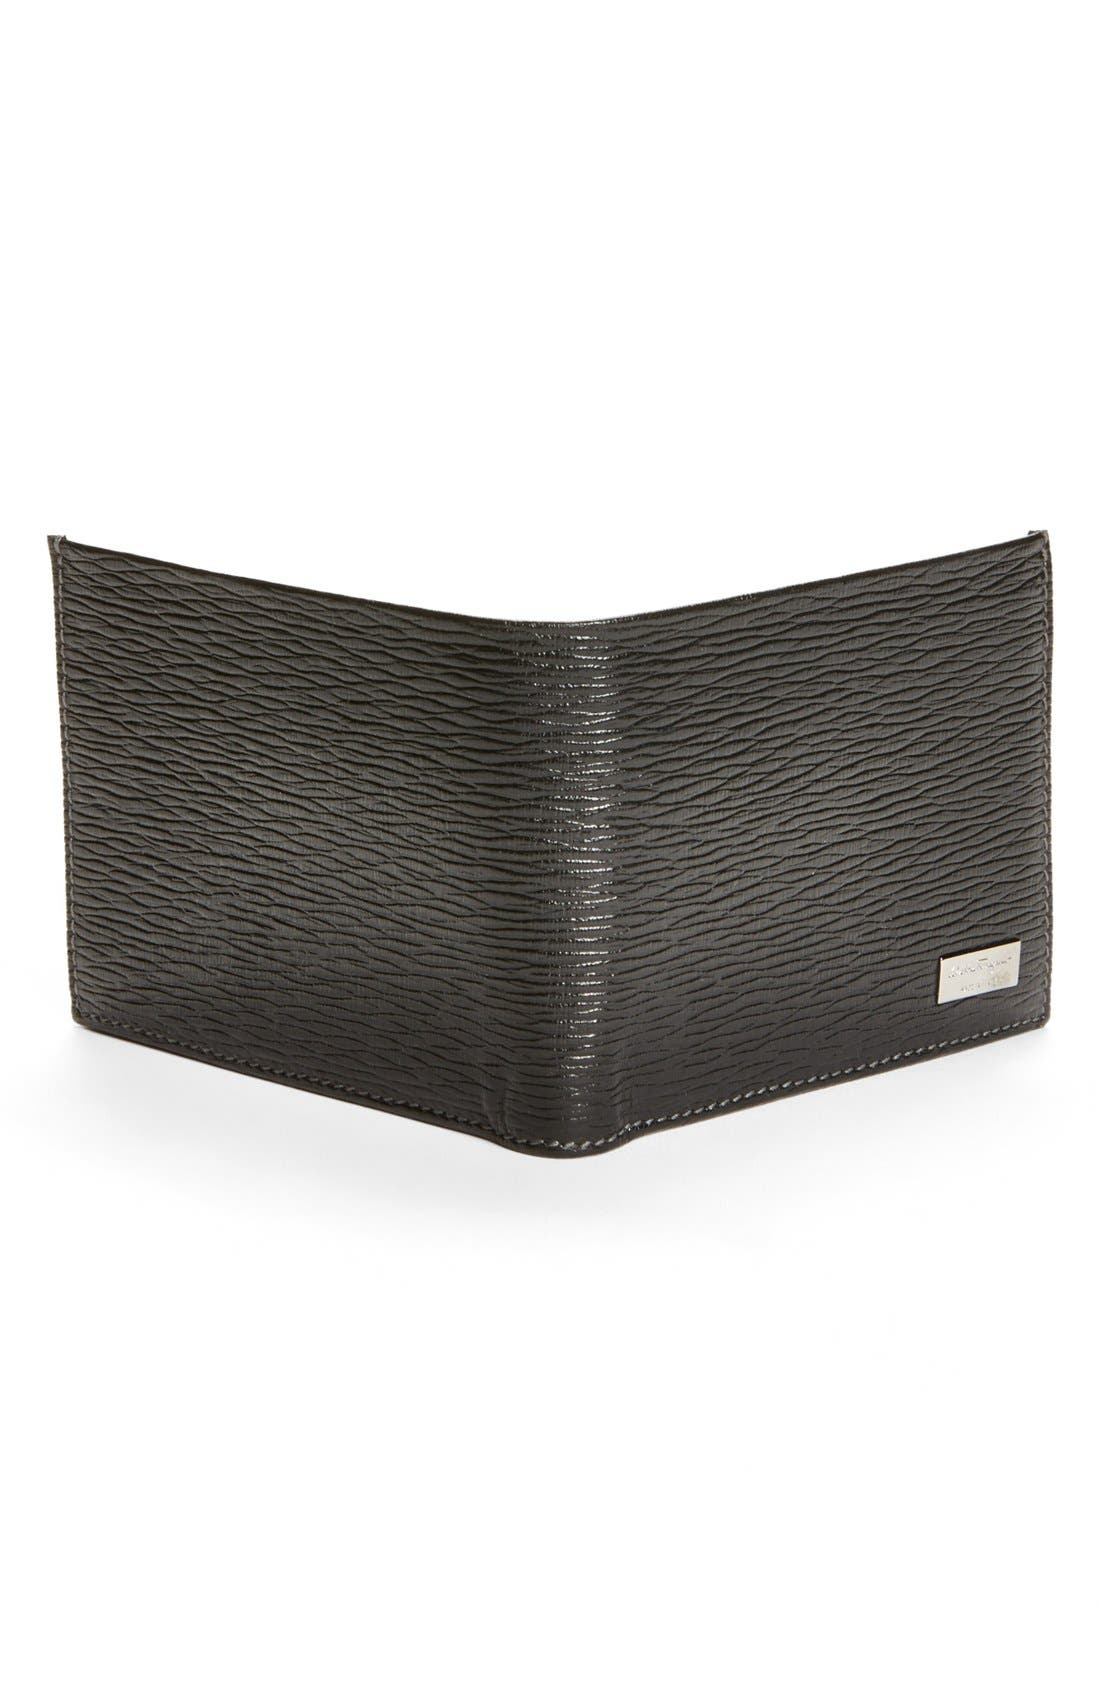 Alternate Image 3  - Salvatore Ferragamo Stamped Calf Wallet